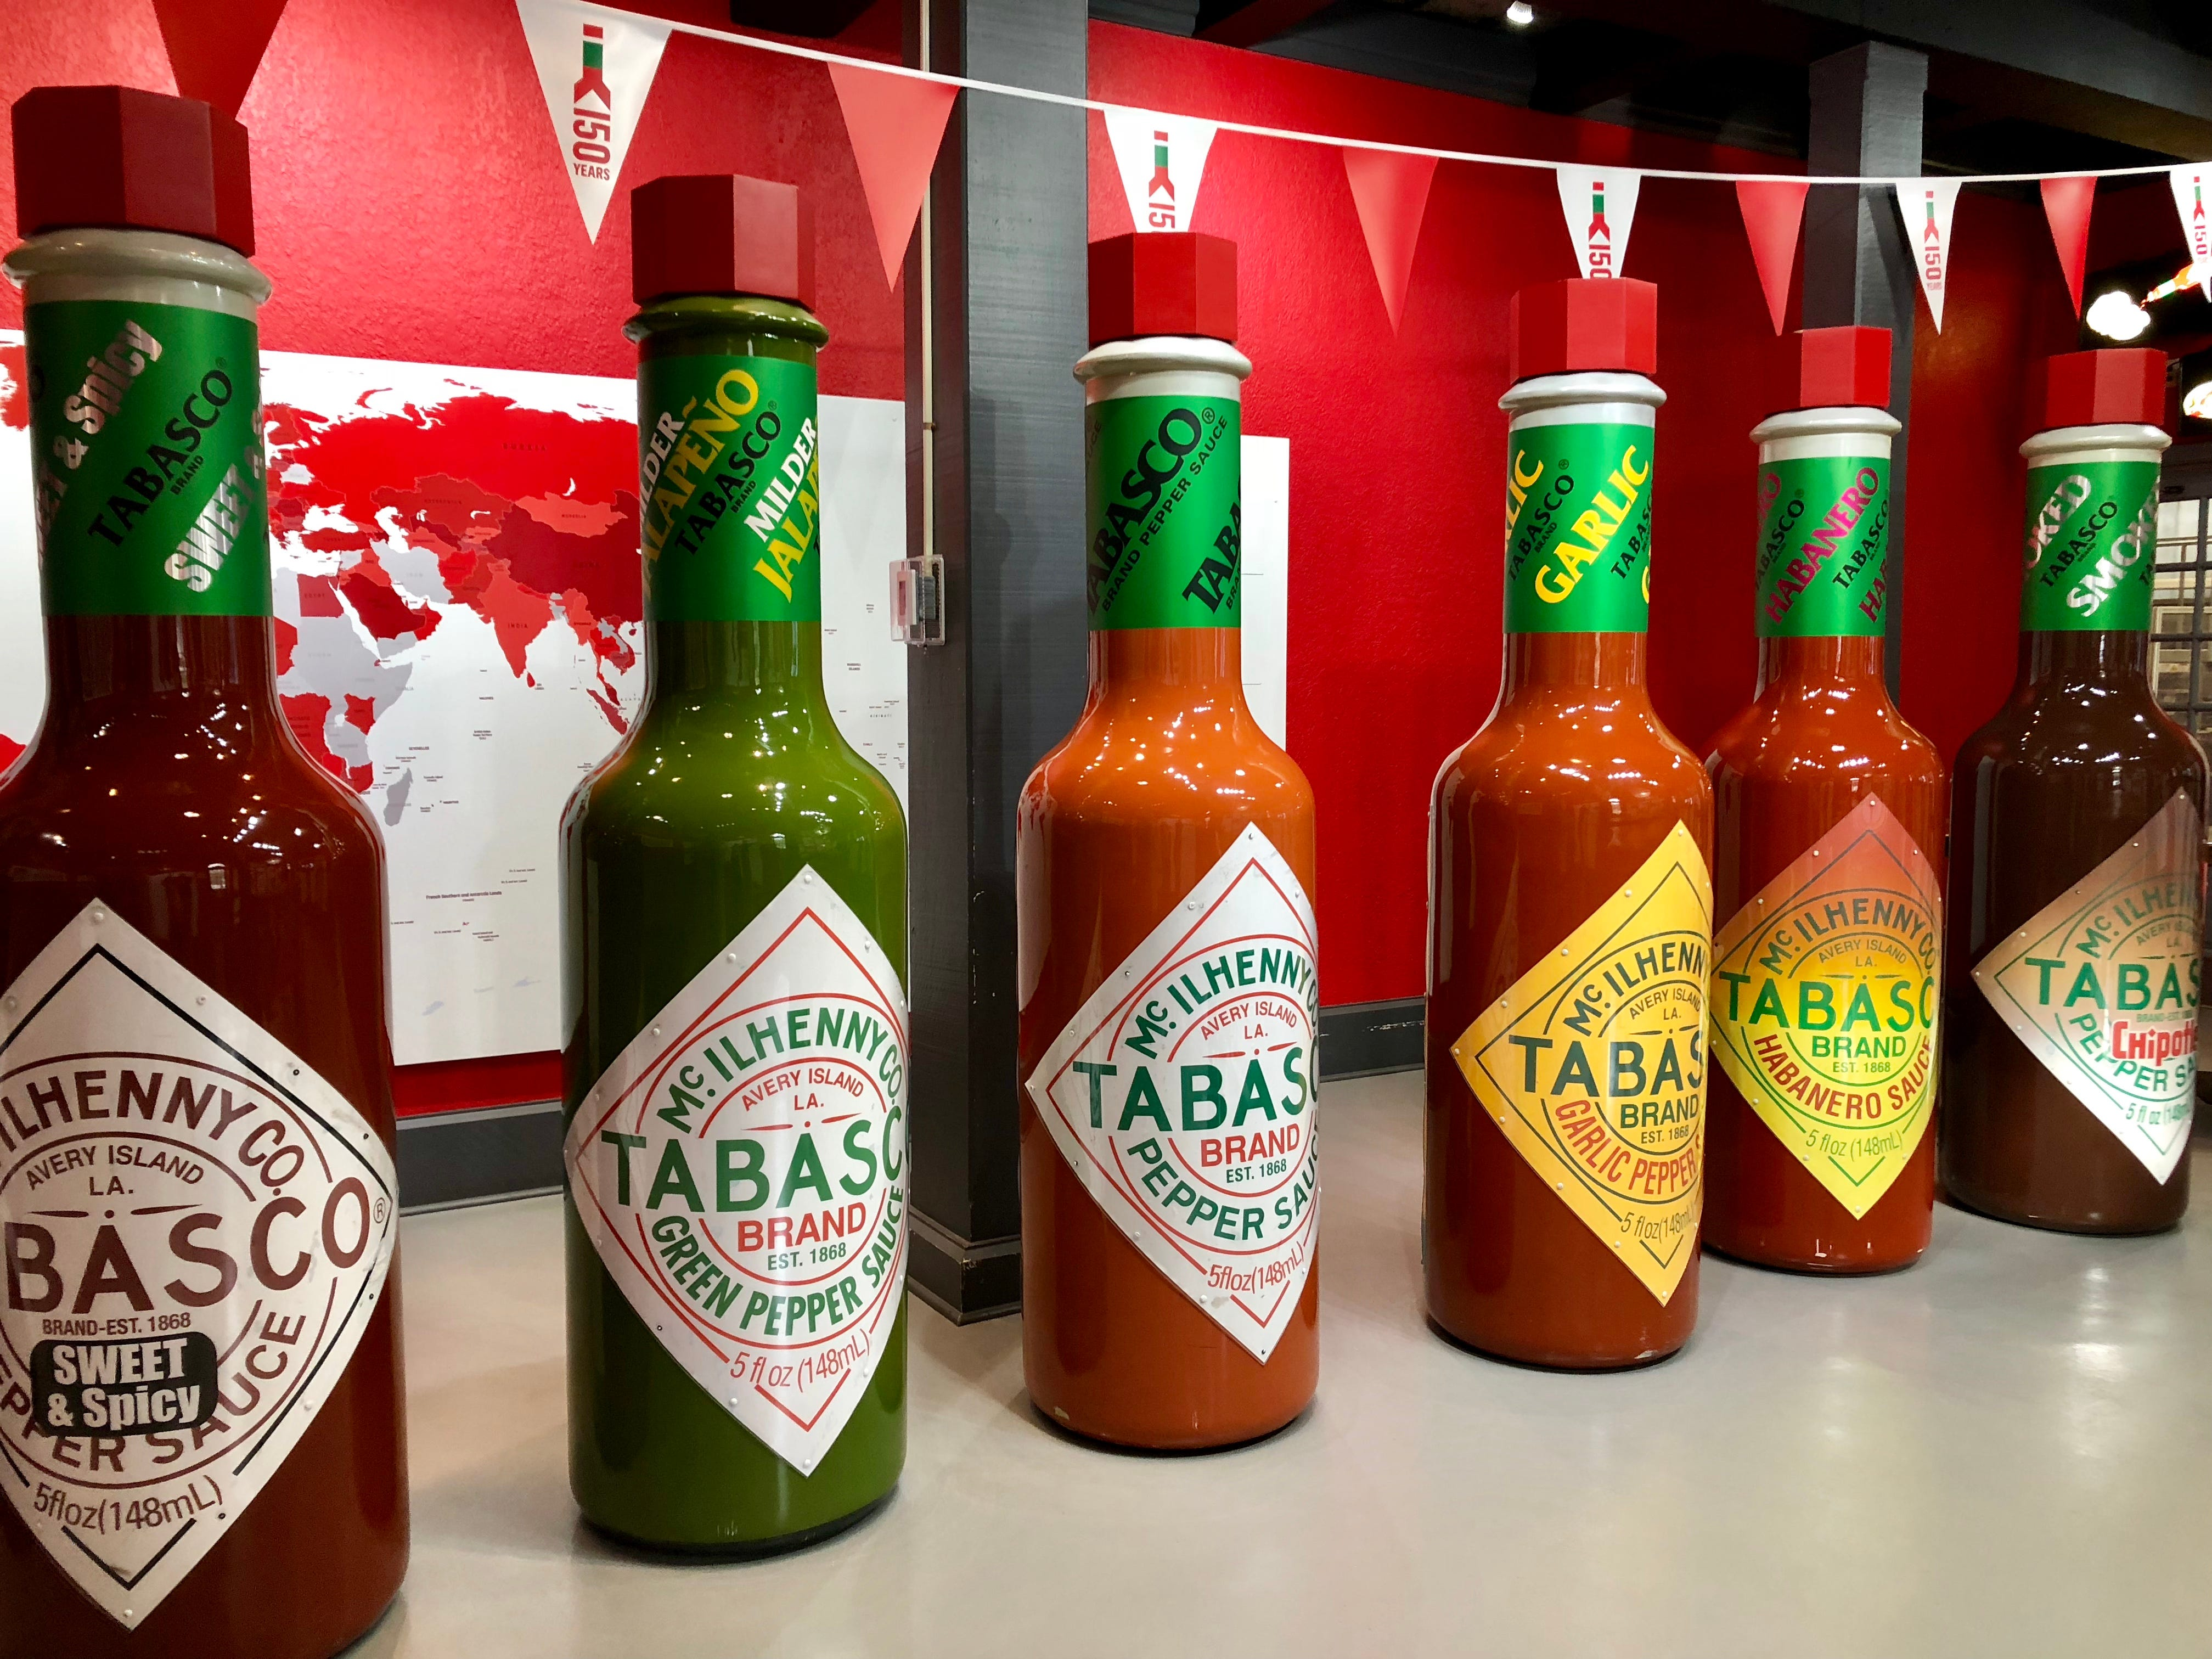 Visitors can learn how Tabasco is made with tours of the plant at Avery Island.